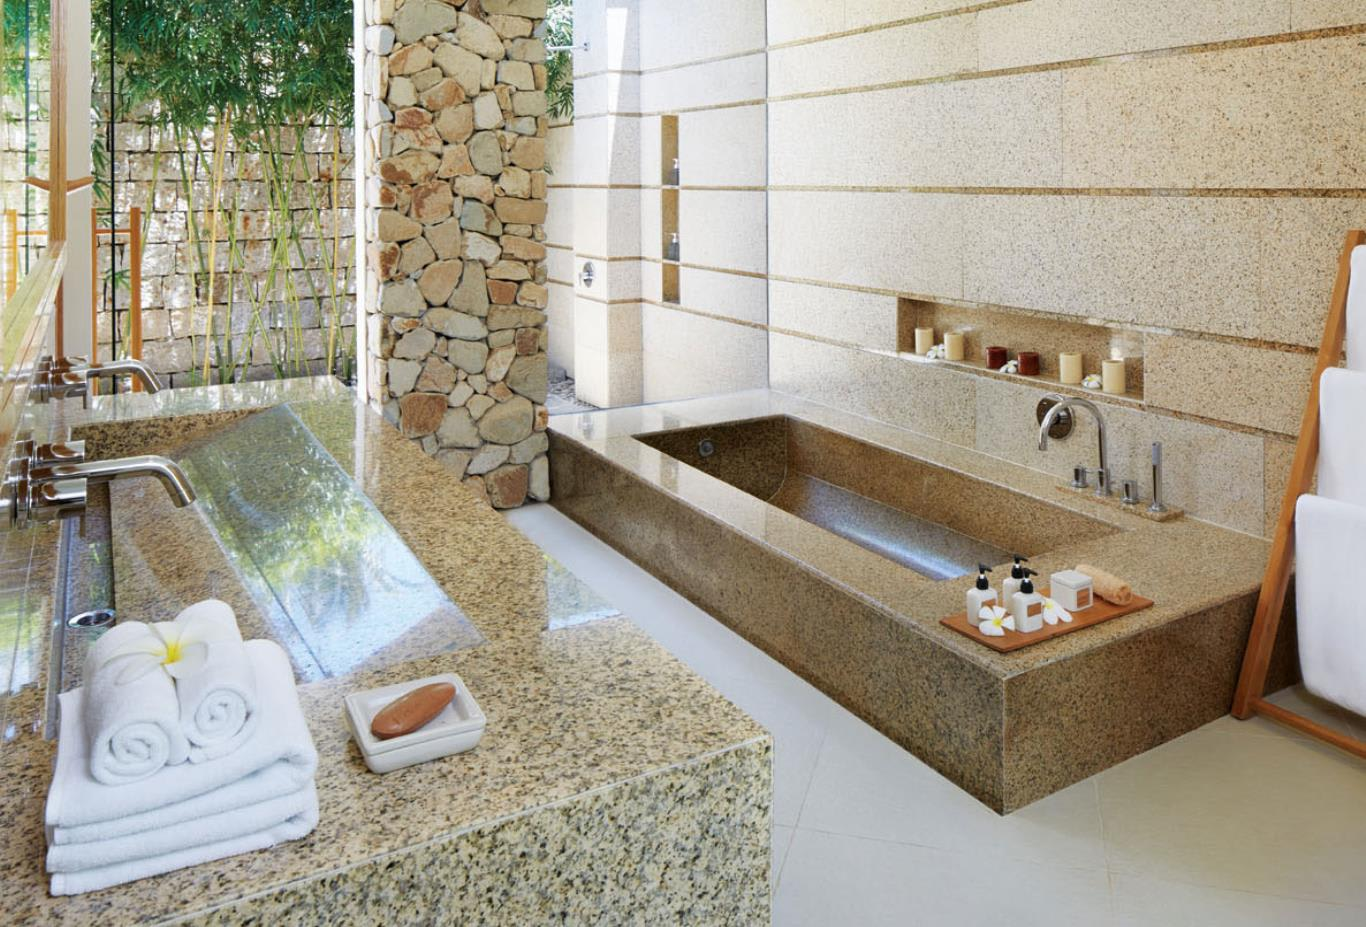 Garden and Cliff villa Bathroom